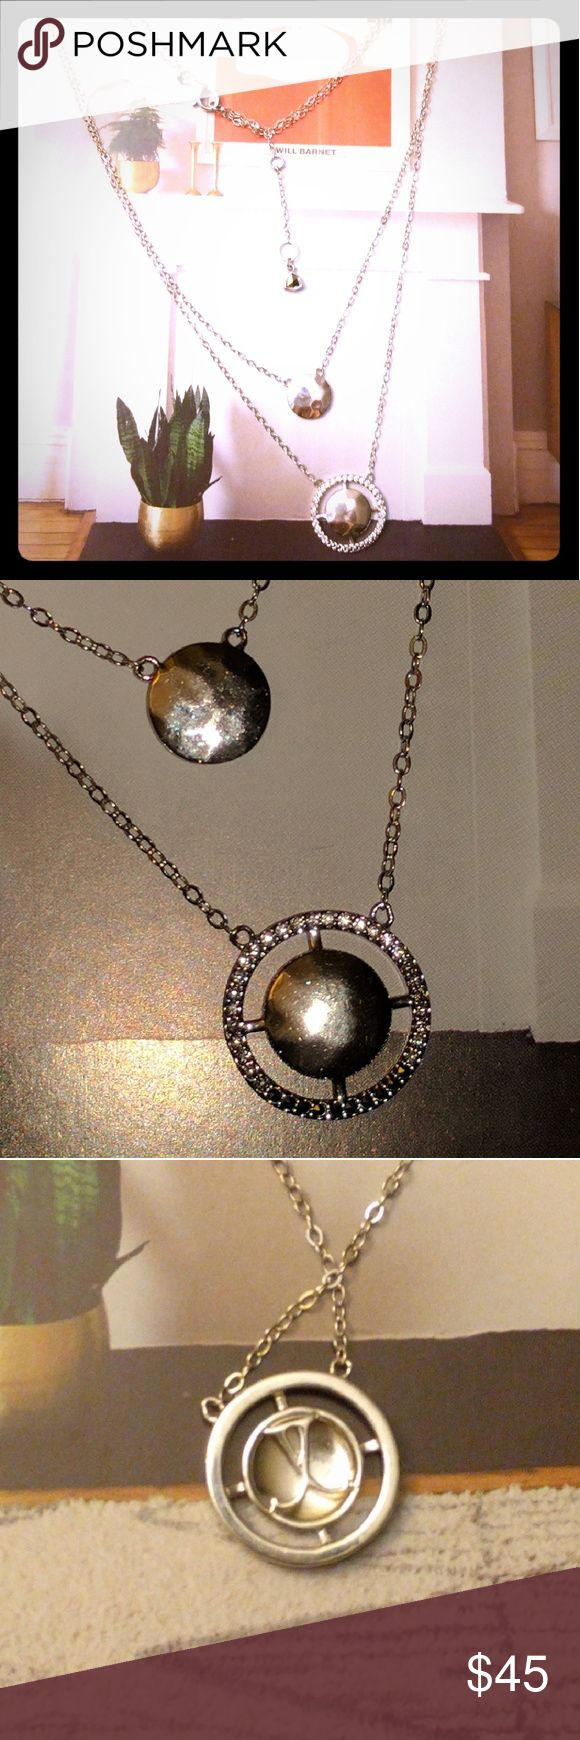 Judith Jack necklace cooling effect pendants Sterling silver women's necklaces new Judith jack Jewelry Necklaces